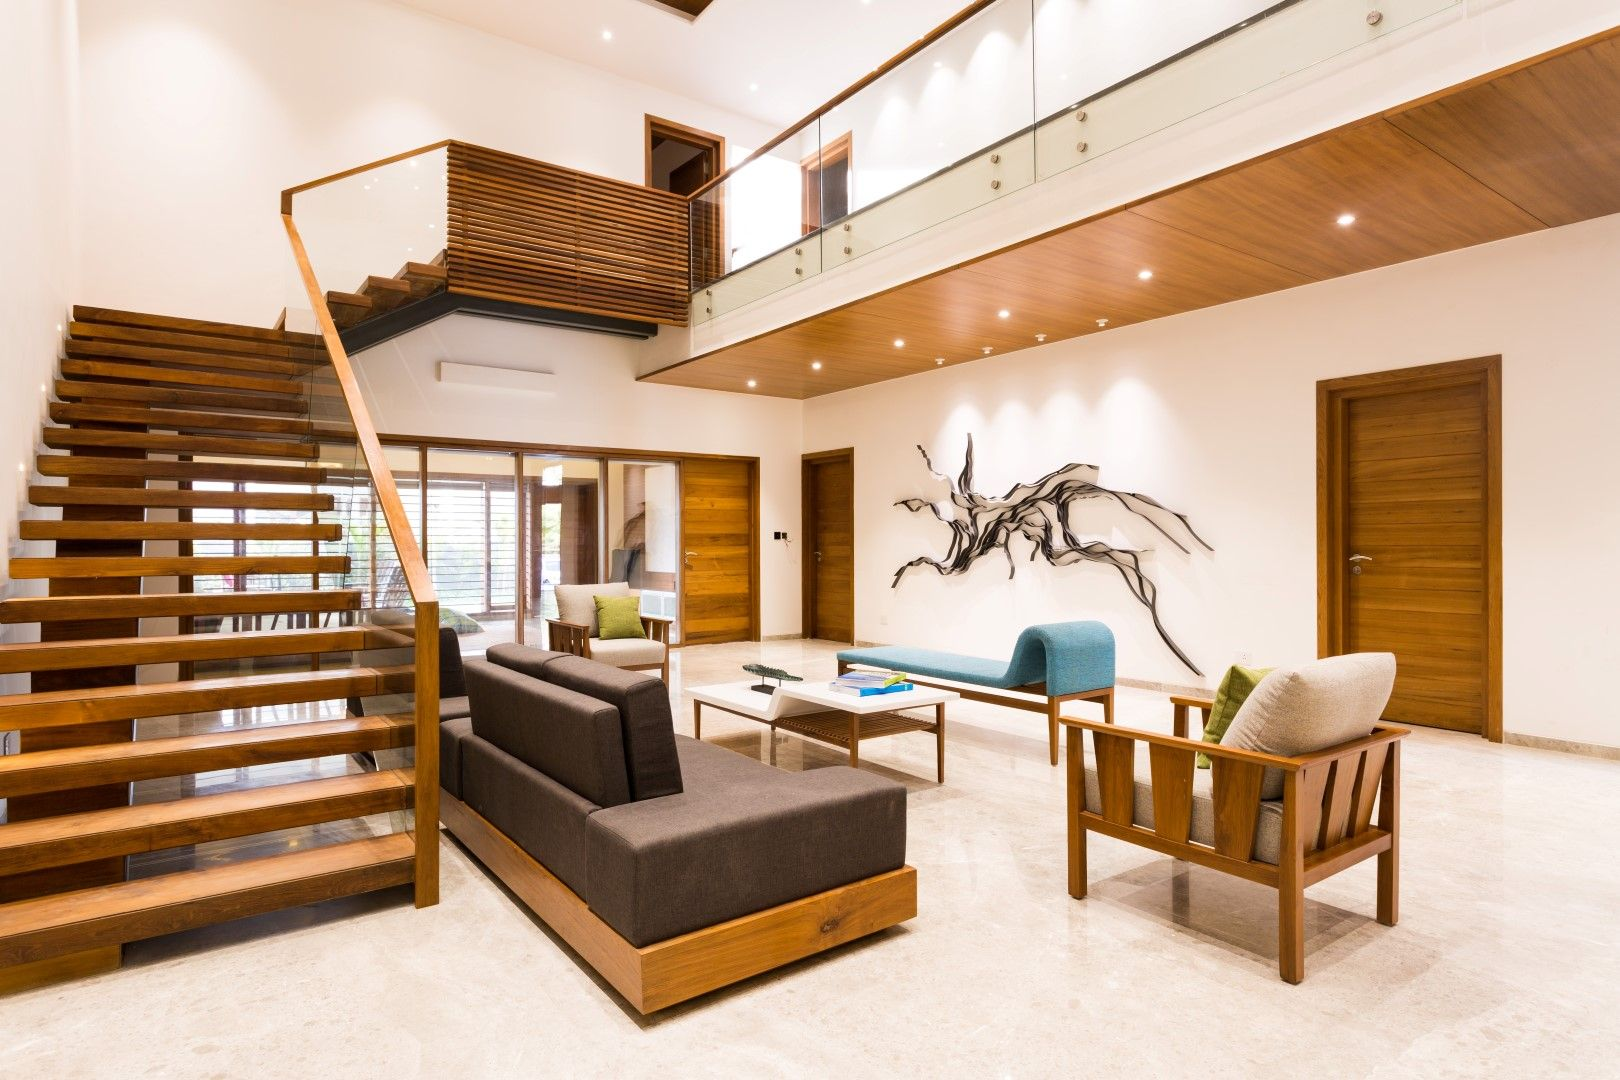 Modern & Neat Residential Interiors | Architects, Penthouses and ...